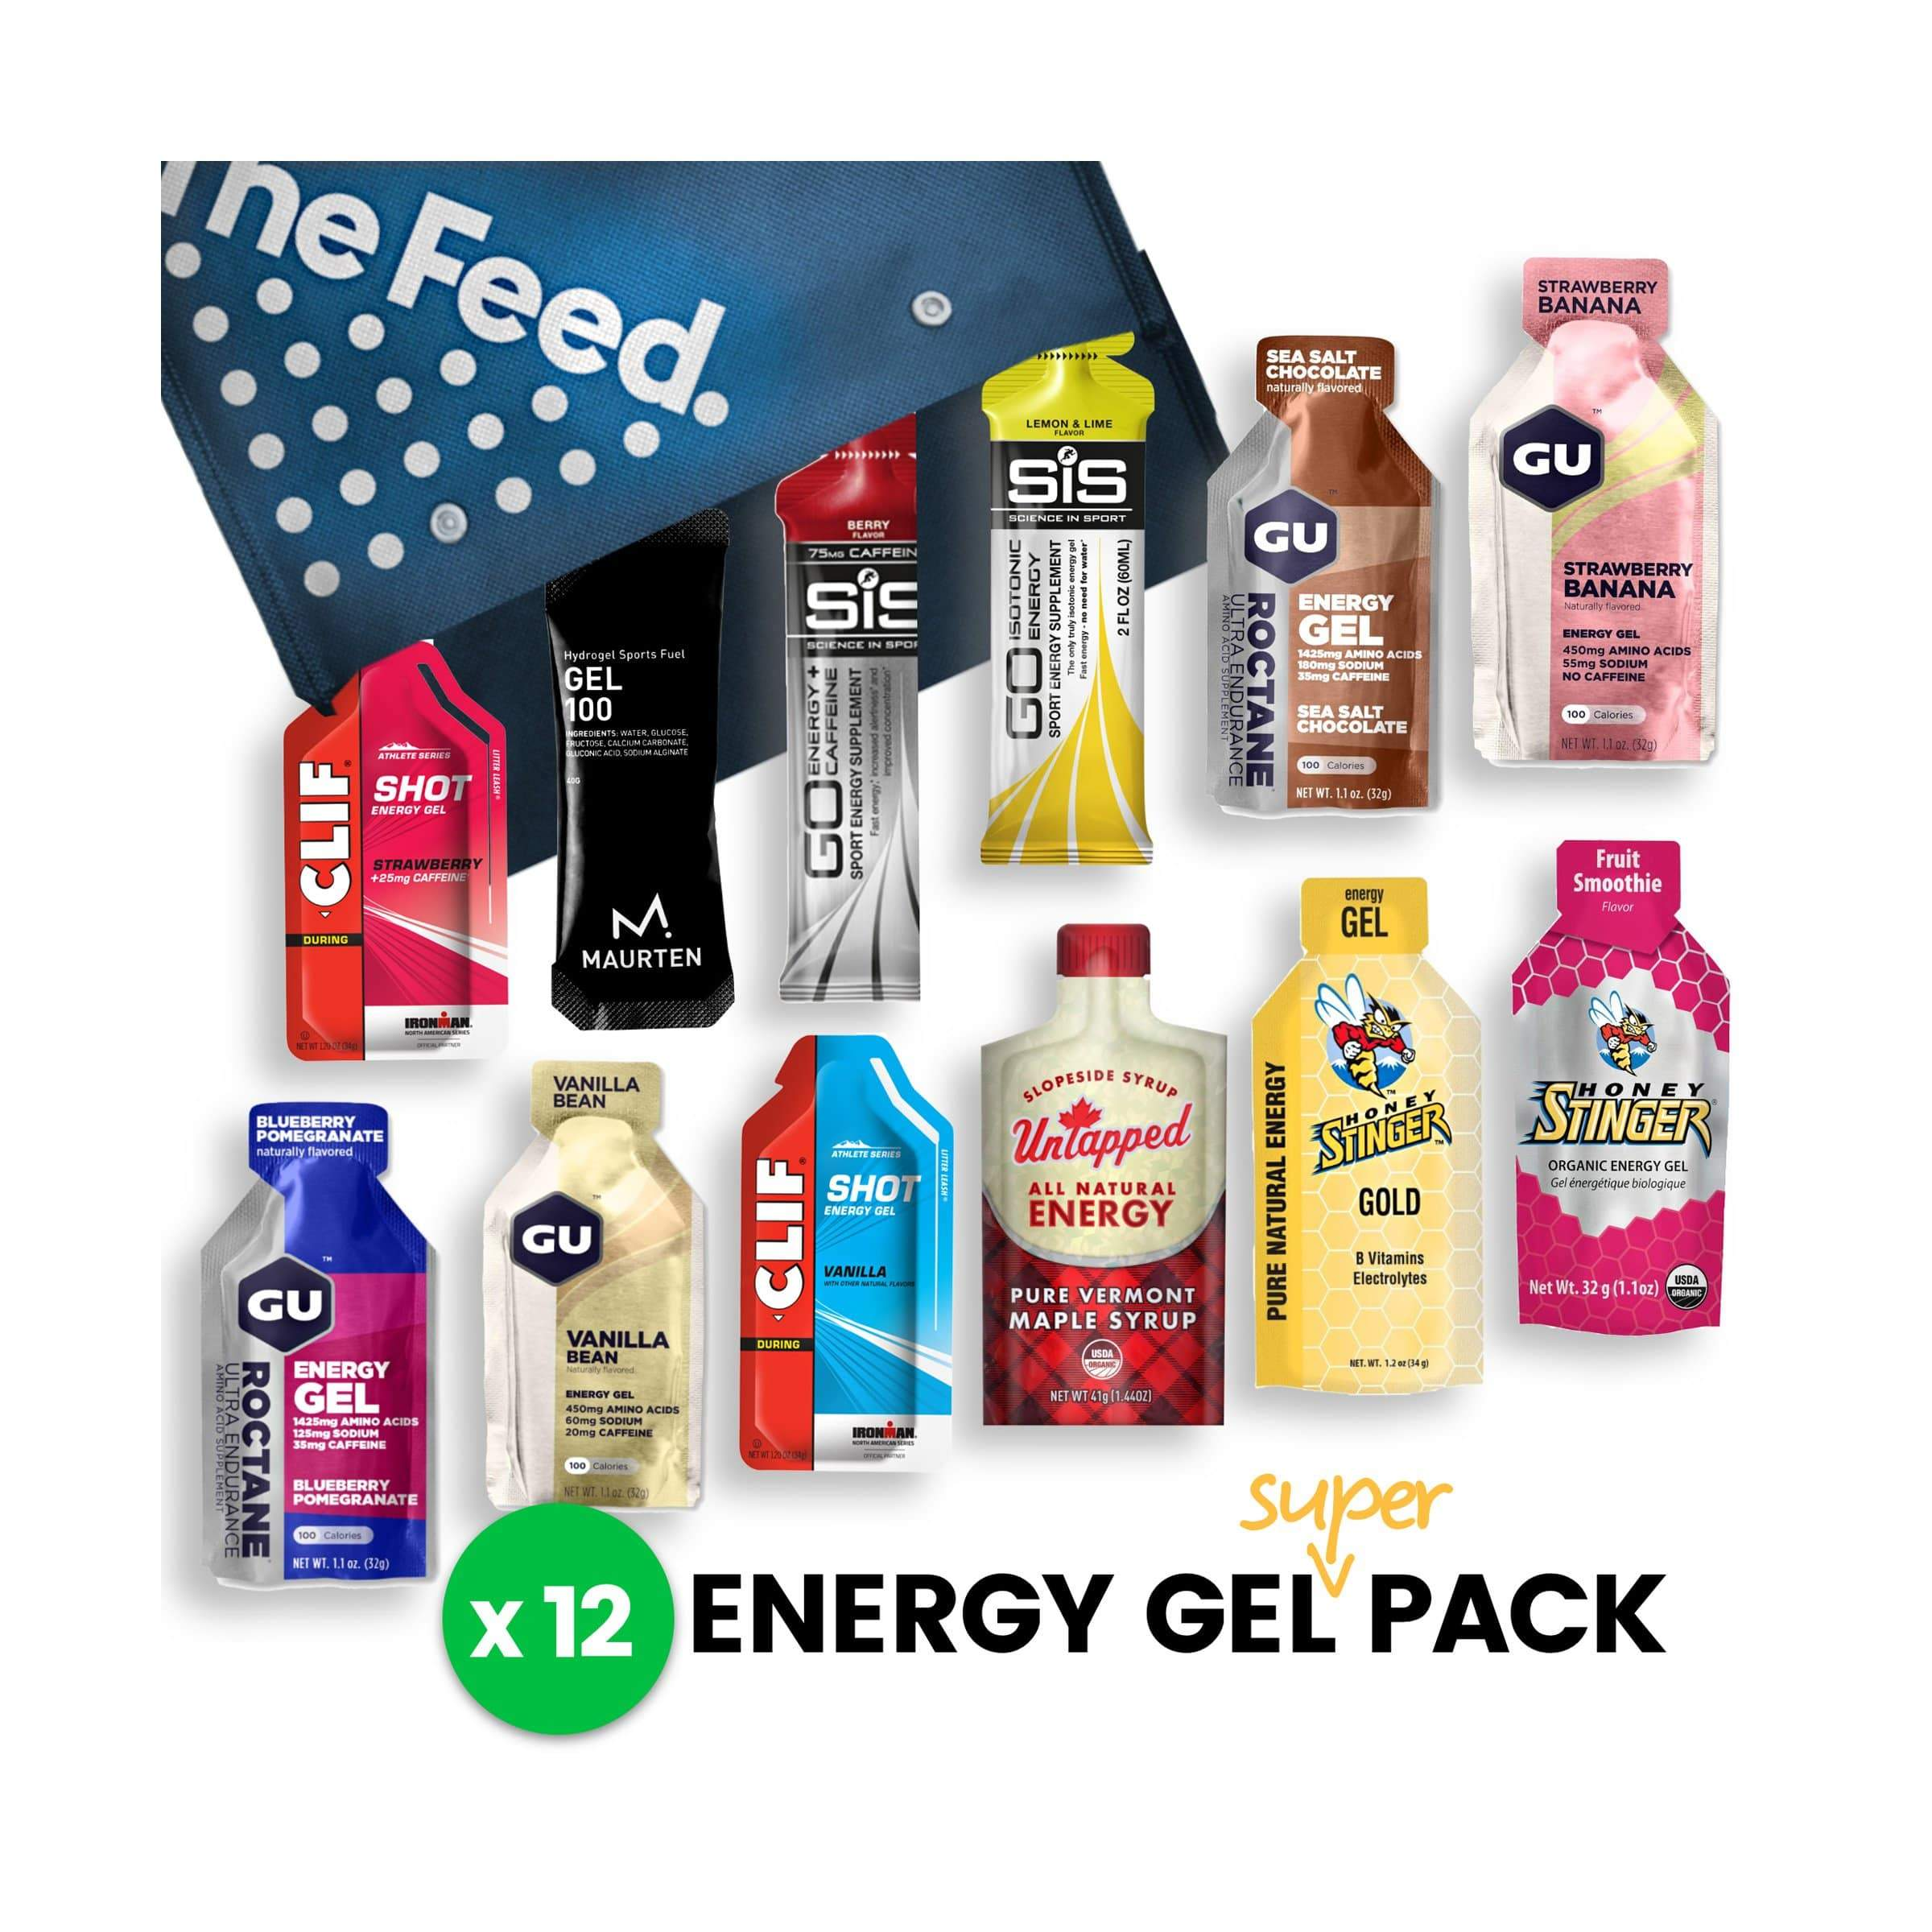 The Feed Energy Gel Super Pack - Gel